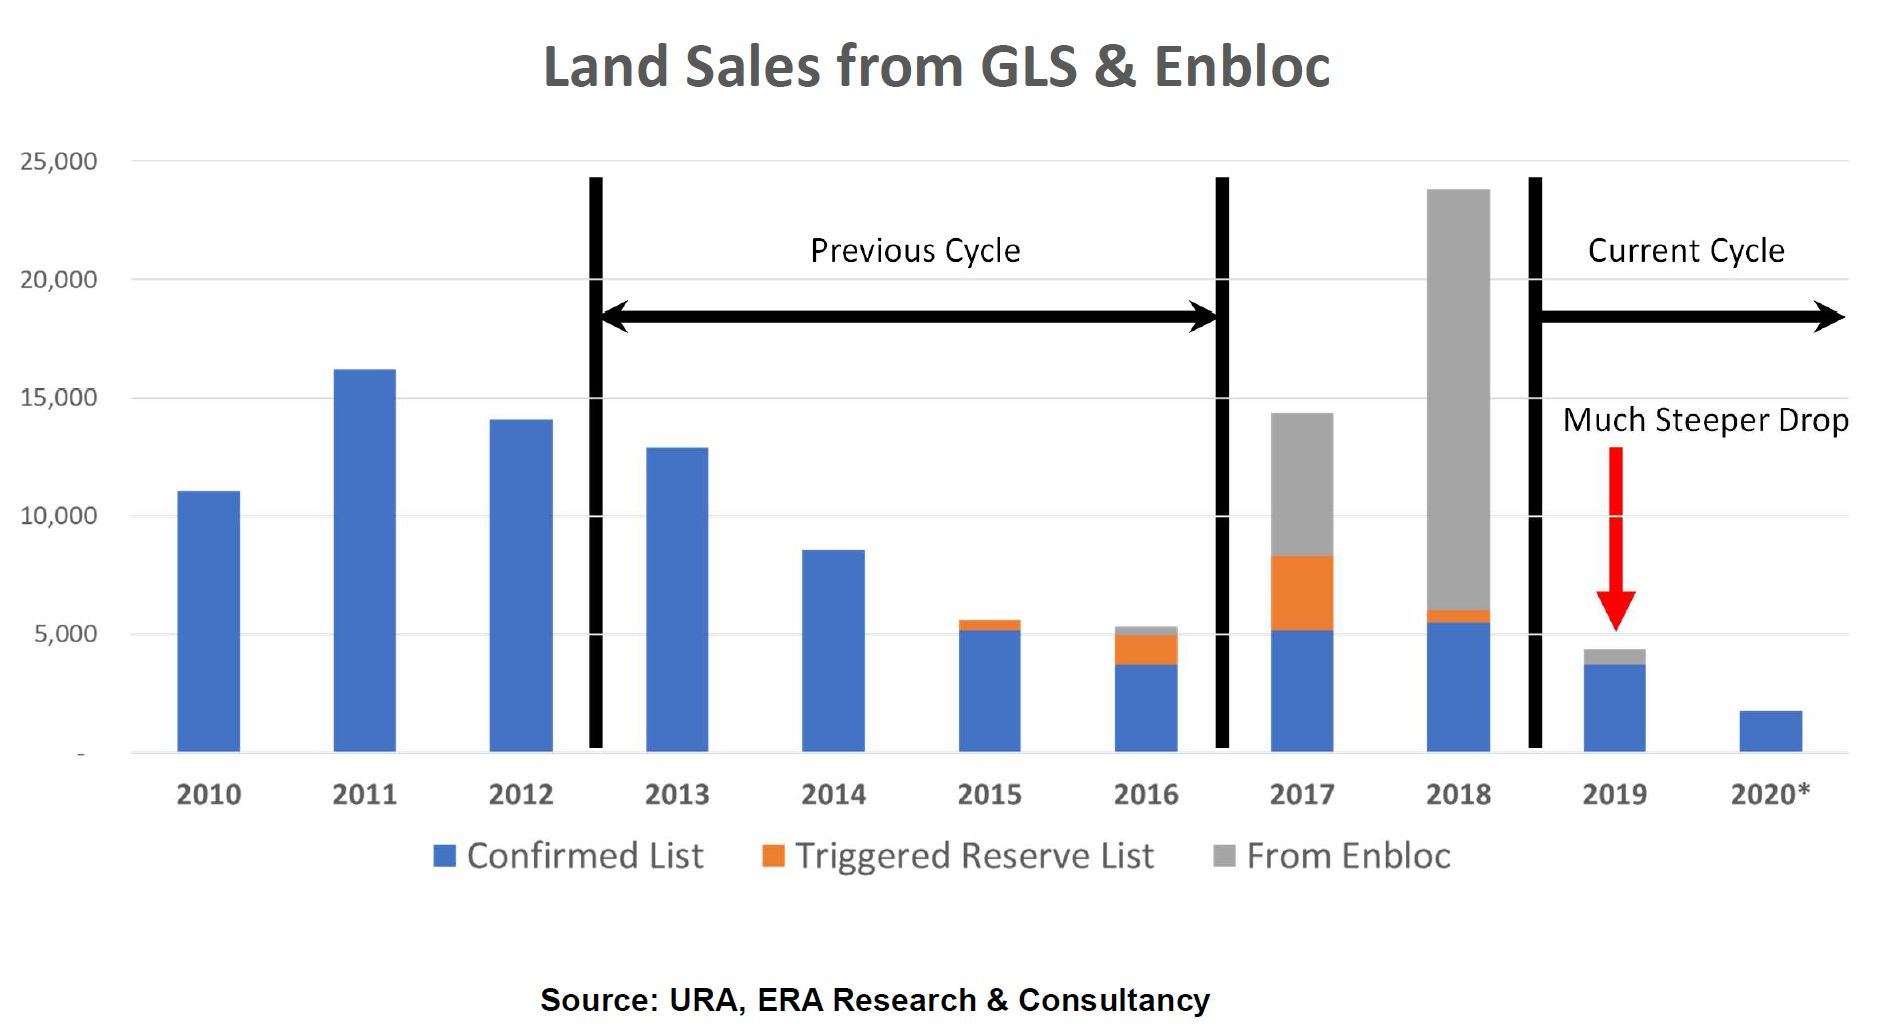 Land Sales Dropping Faster